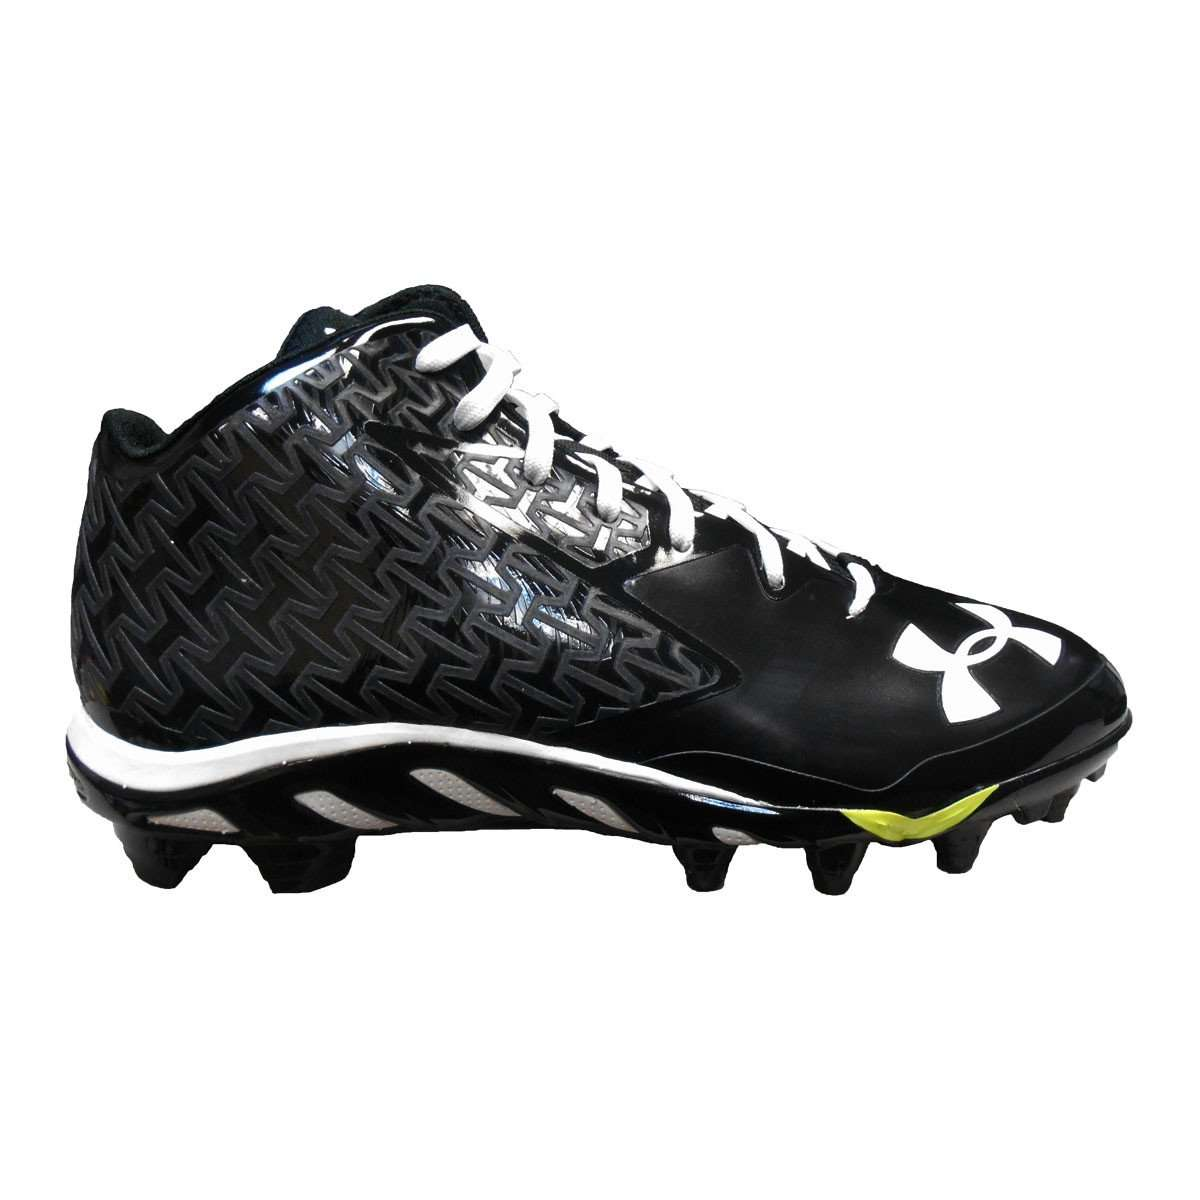 52506a61681b Under Armour Team Spine Nitro Mid MC Football Cleats - 10 / White/Black/Red